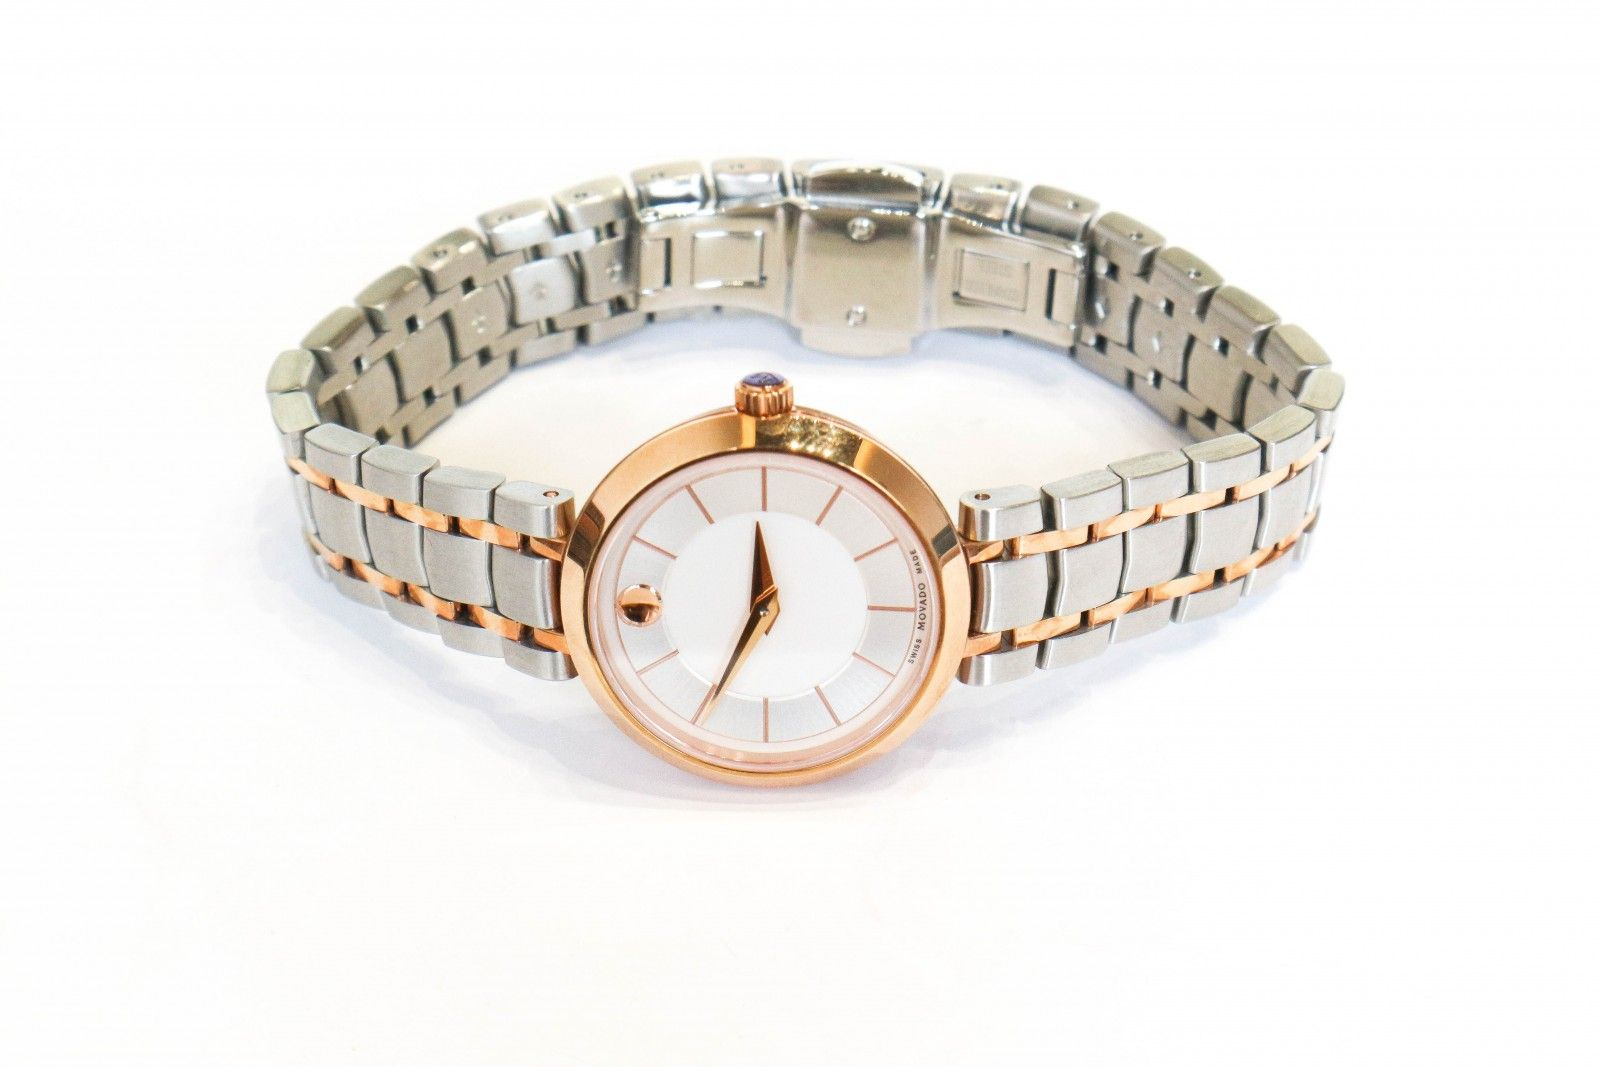 Đồng hồ 1881 Quartz rose gold PVD-finished stainless steel 0607099, 28mm  0607099 ✅ likewatch.com